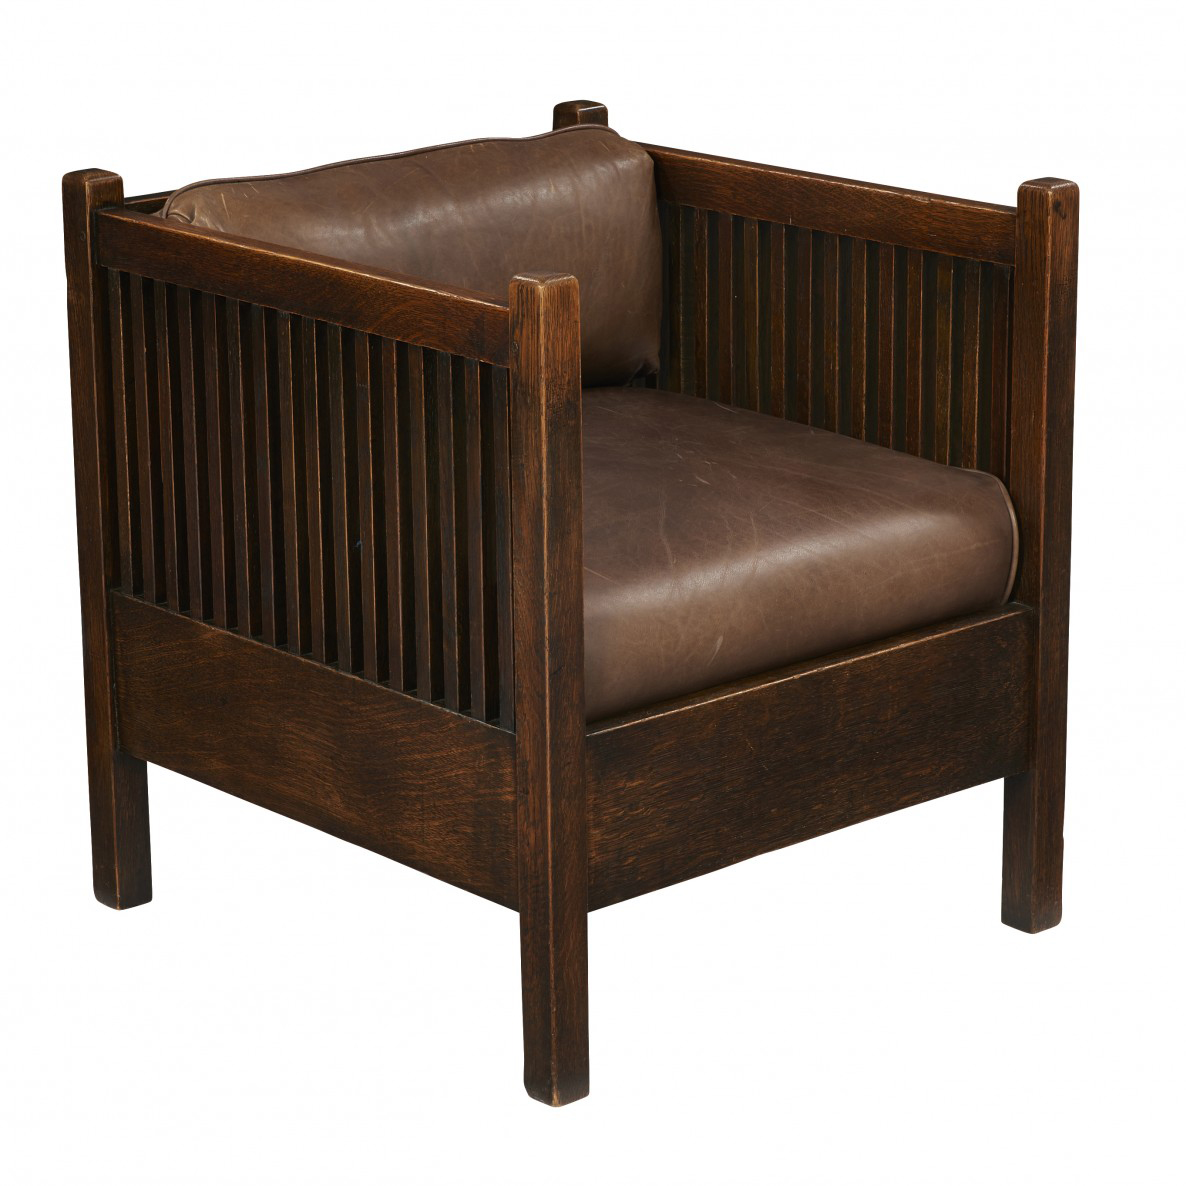 Gustav Stickley Spindle Cube Chair